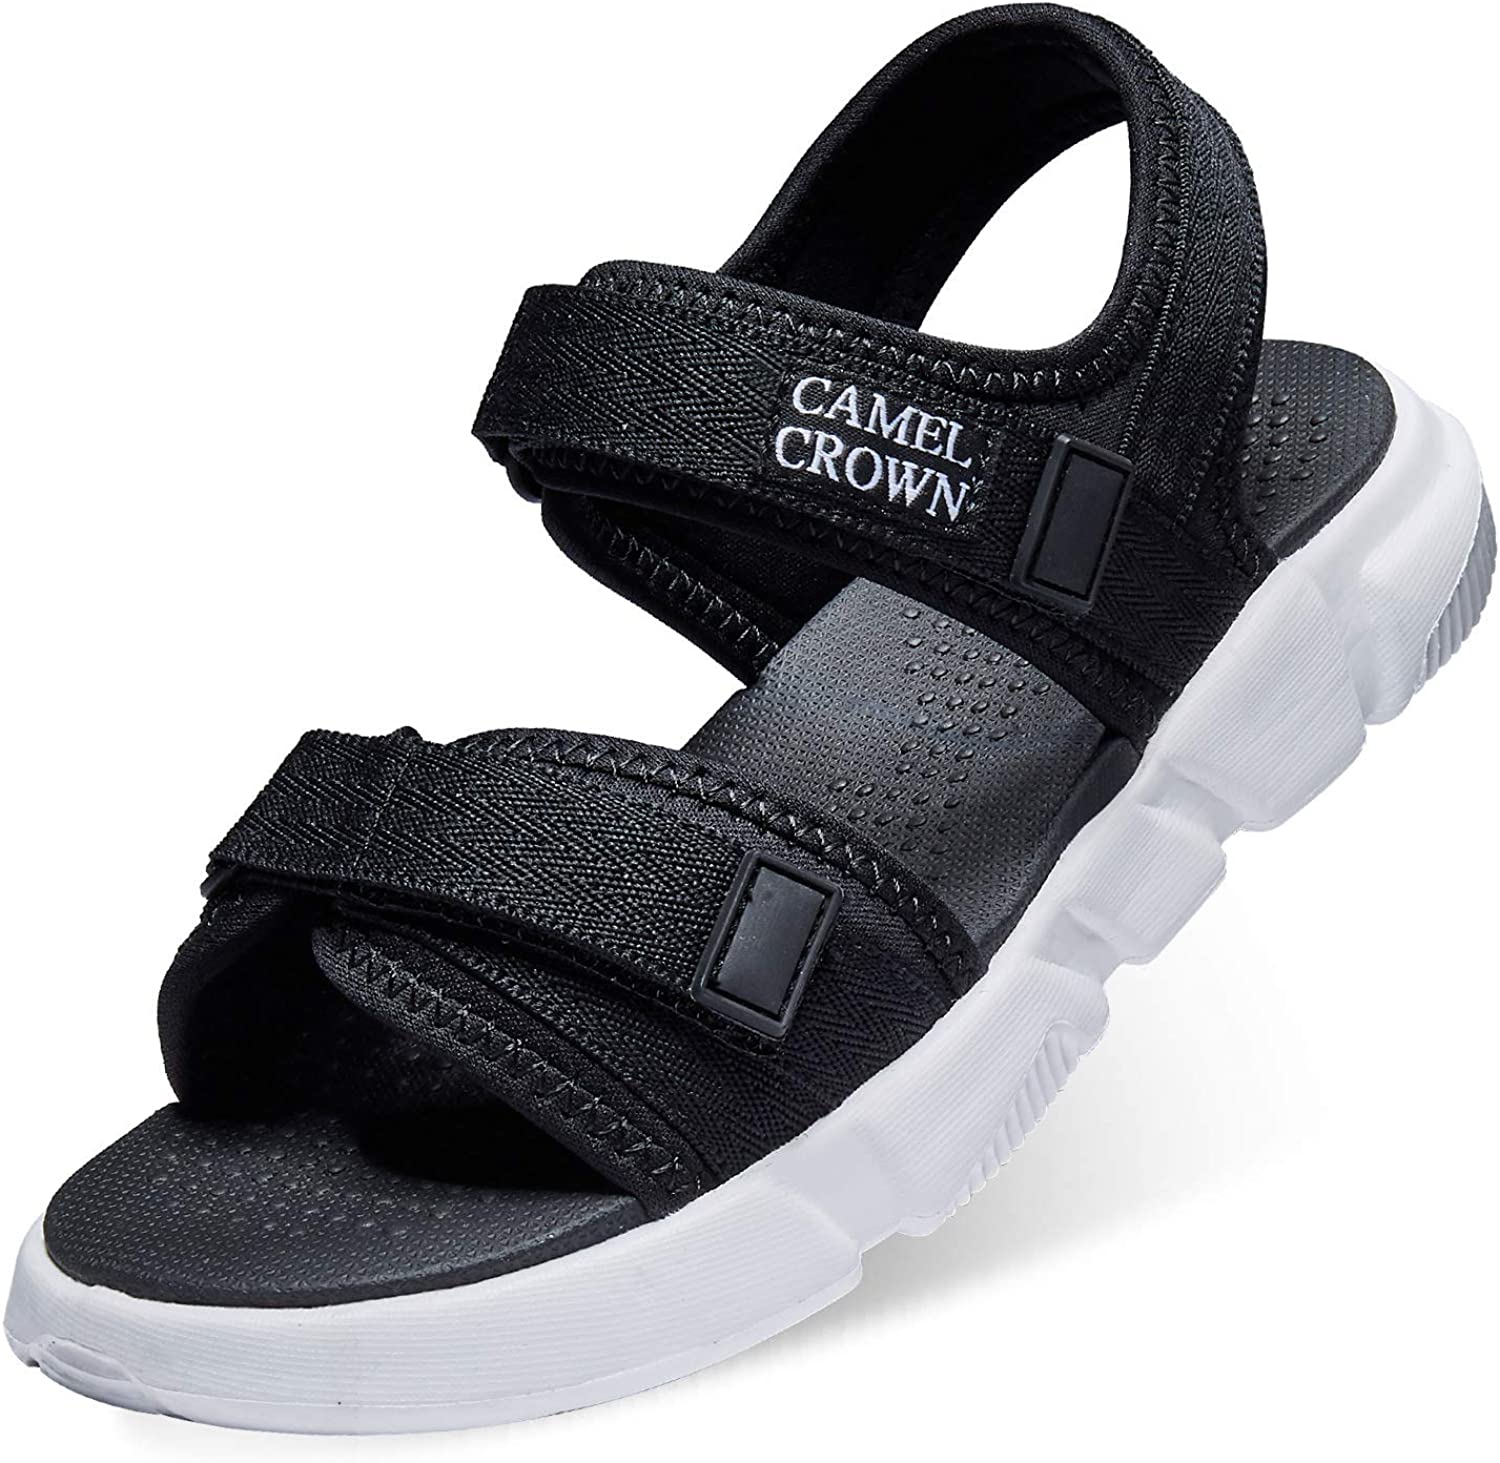 CAMELSPORTS Women Walking Sandals Summer Athletic Sandals Sport Water Shoes Beach for Casual Travel Outdoor